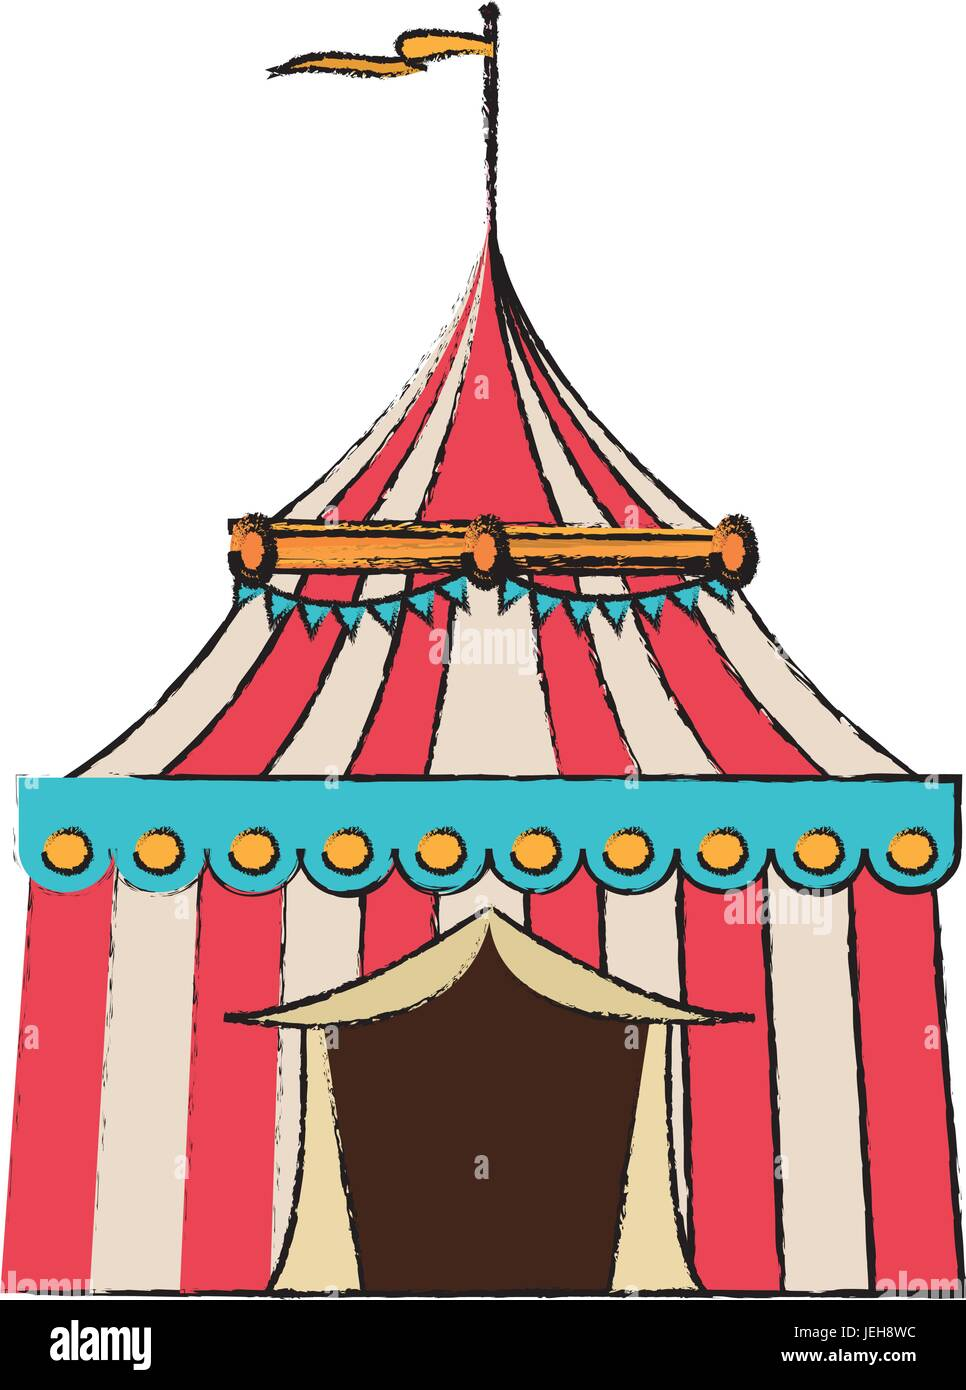 circus tent tops stripes flag on top  sc 1 st  Alamy & circus tent tops stripes flag on top Stock Vector Art ...